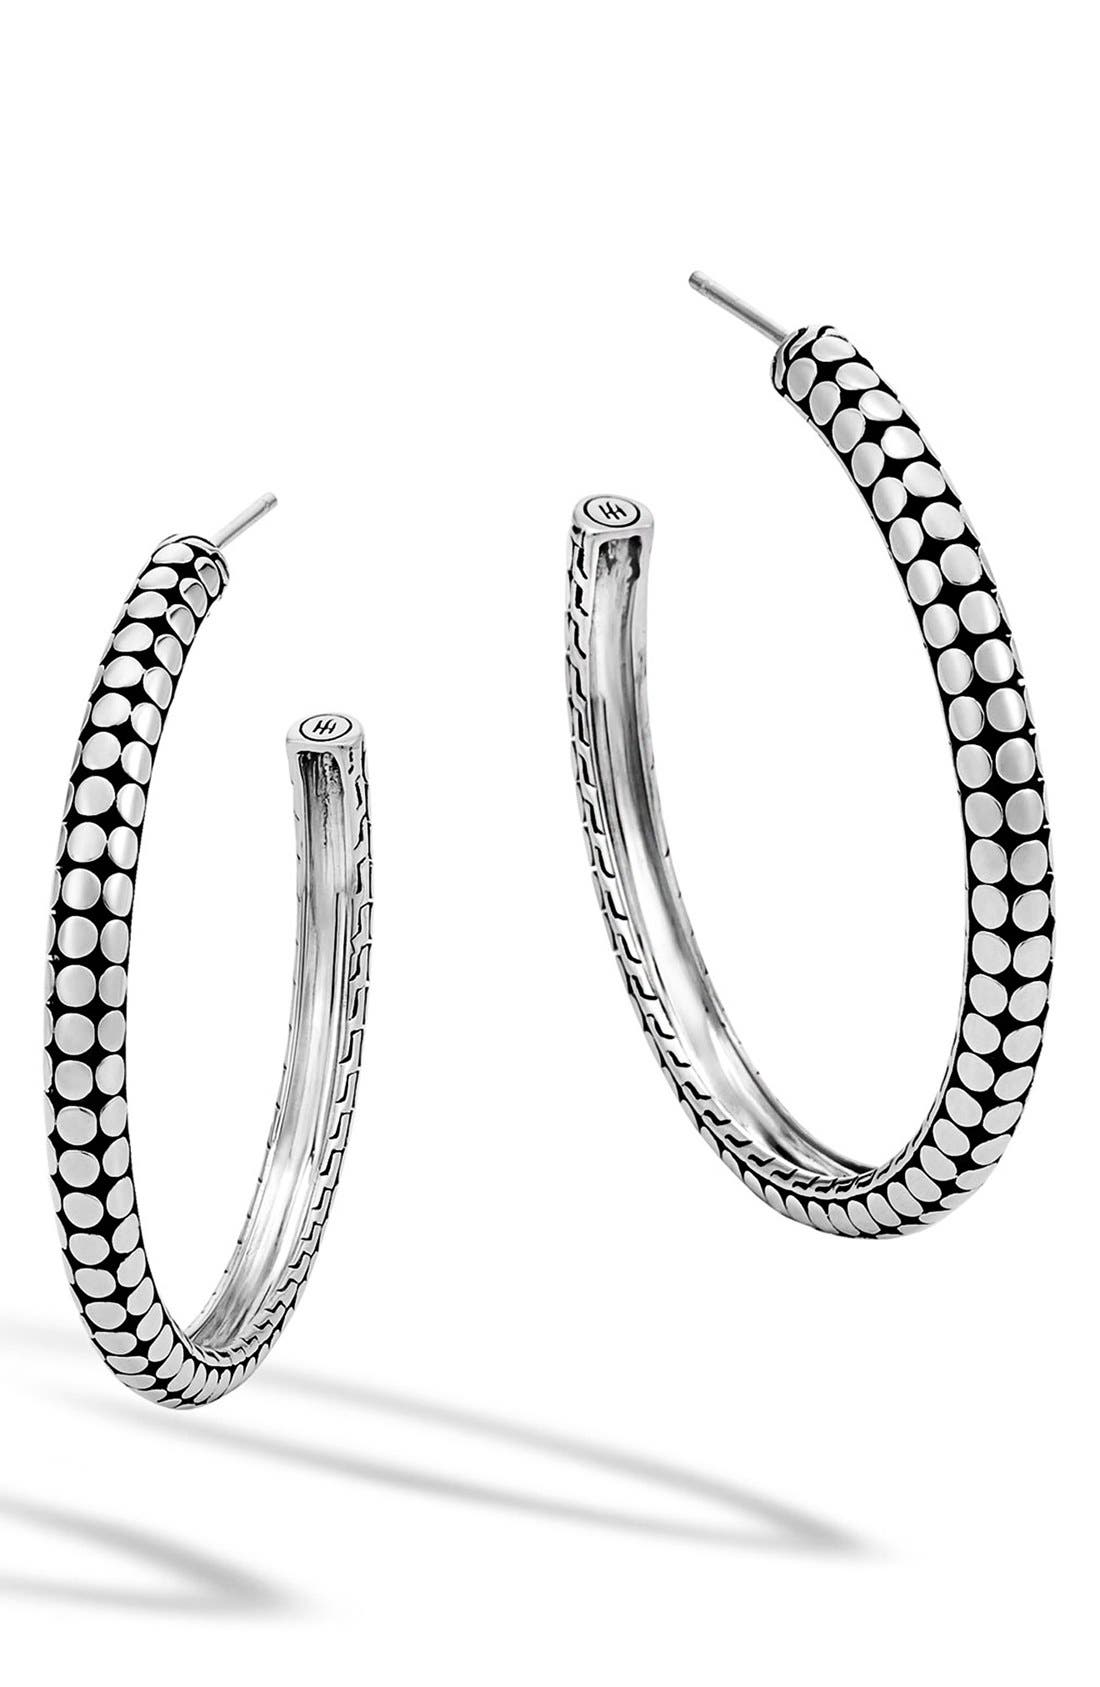 John Hardy 'Dot' Hoop Earrings